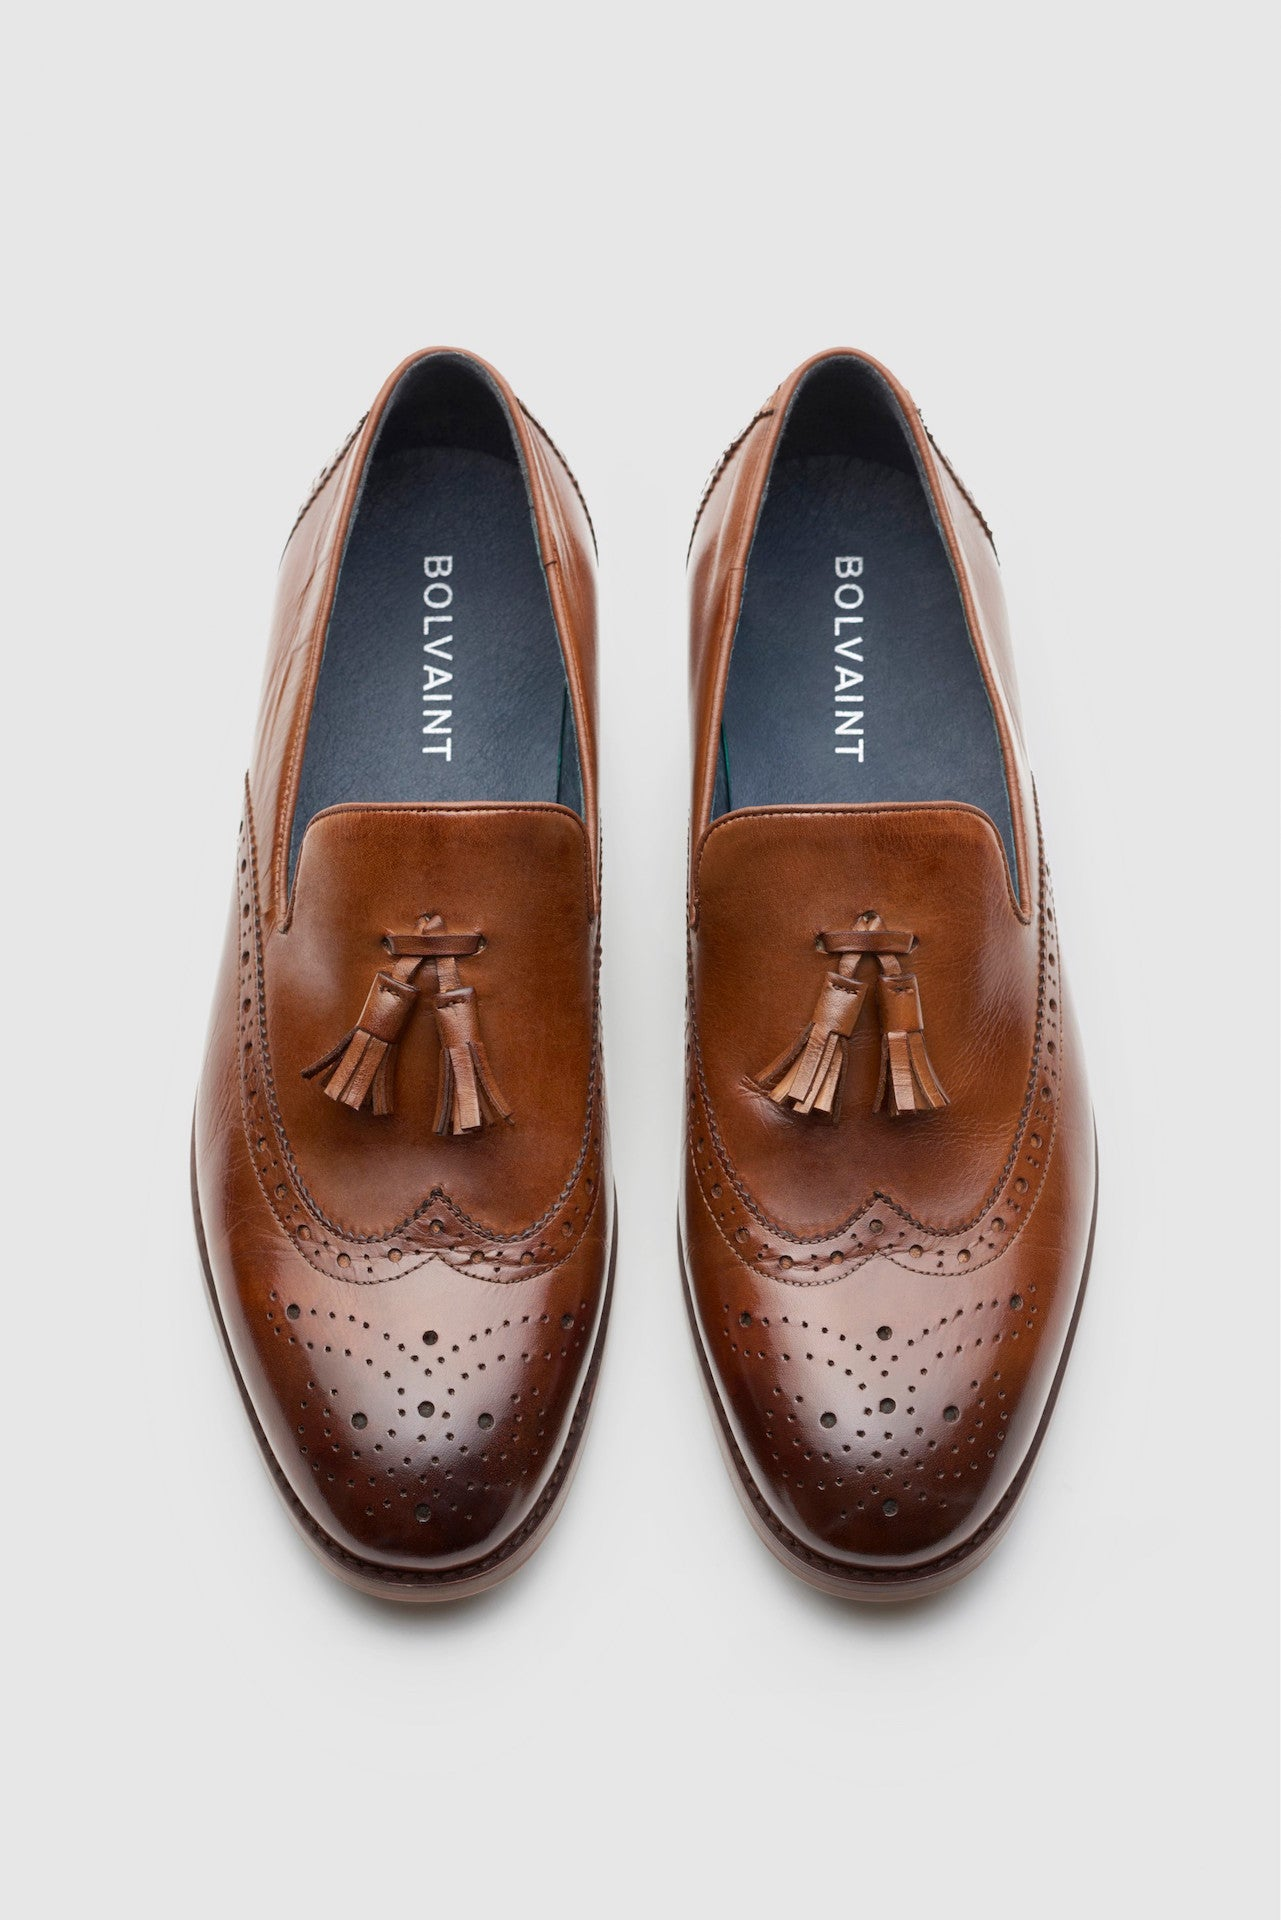 The Verrocchio Tassel Loafer